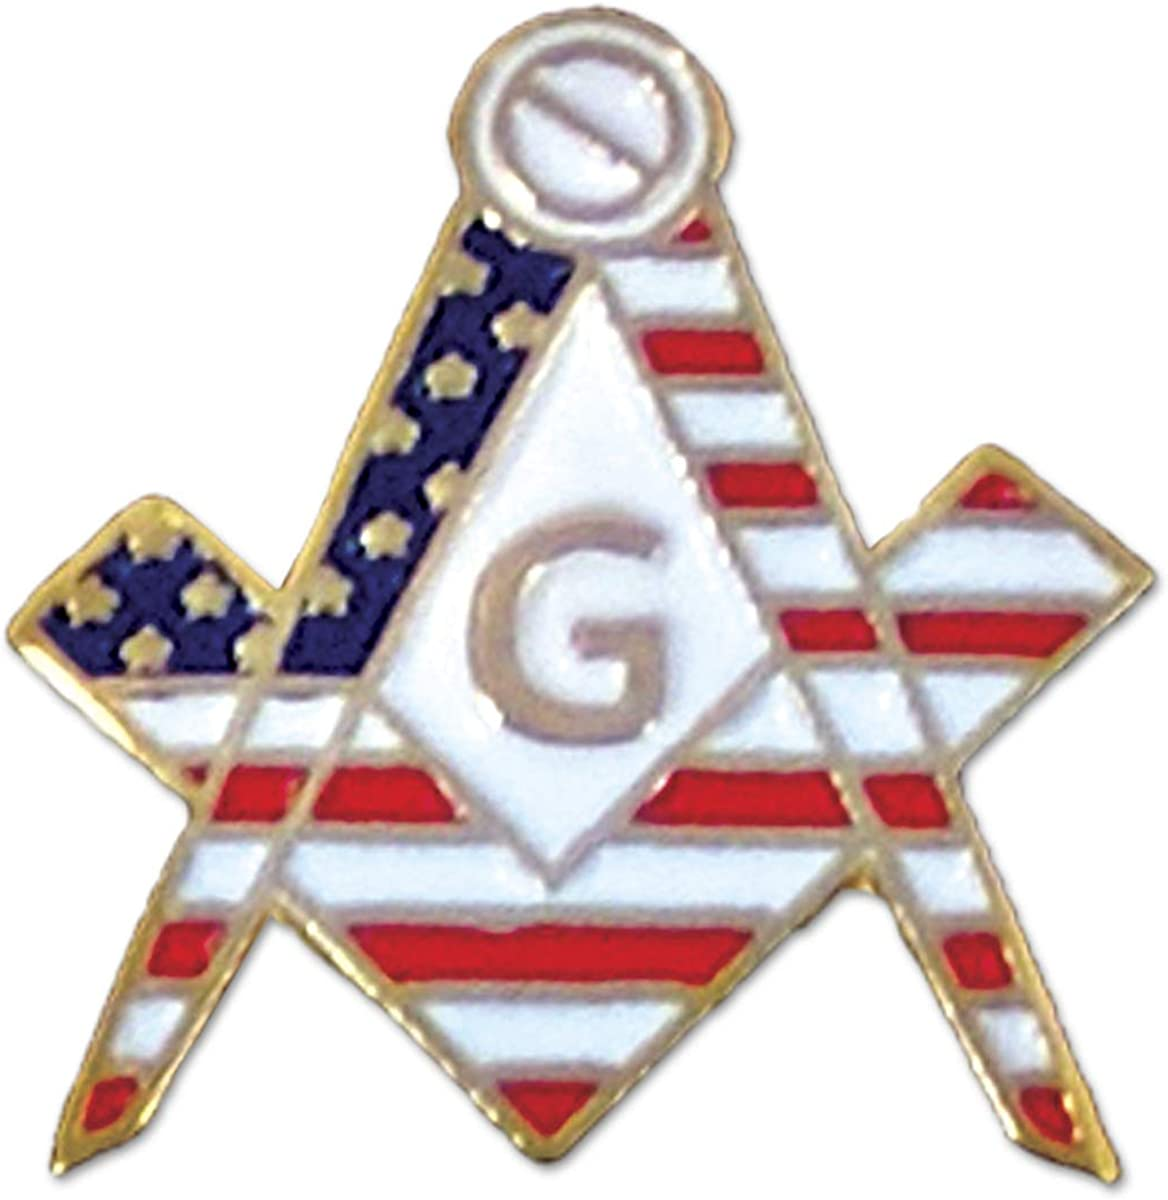 American Flag Square & Compass Masonic Lapel Pin - [White & Red][3/4'' Tall]